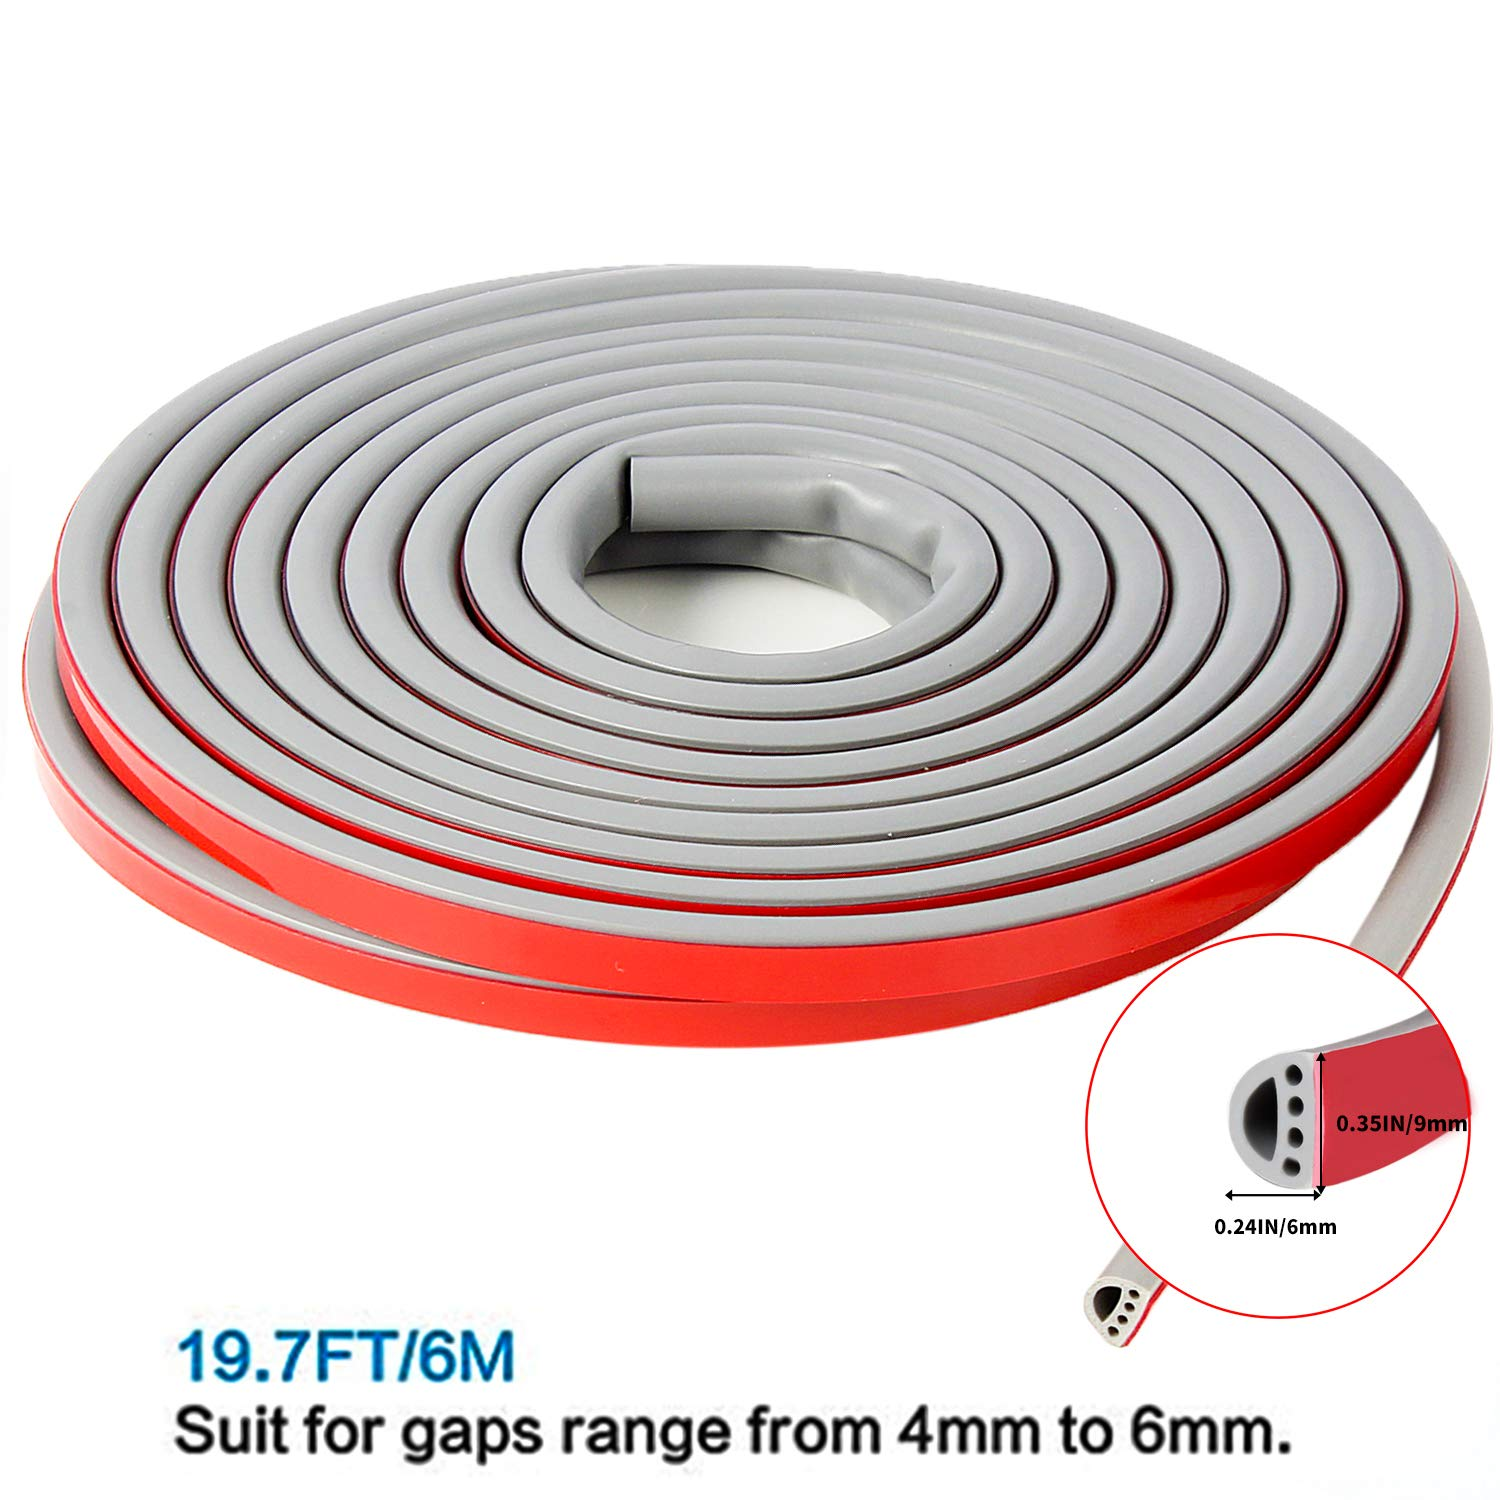 White,6M Qishare Silicone Rubber Weather Strip Multi-Hole Design Seal Strip for Doors and Windows Professional Self-Adhesive Anti-Collision Ageing-Resistant Soundproof Waterproof Dustproof Windproof